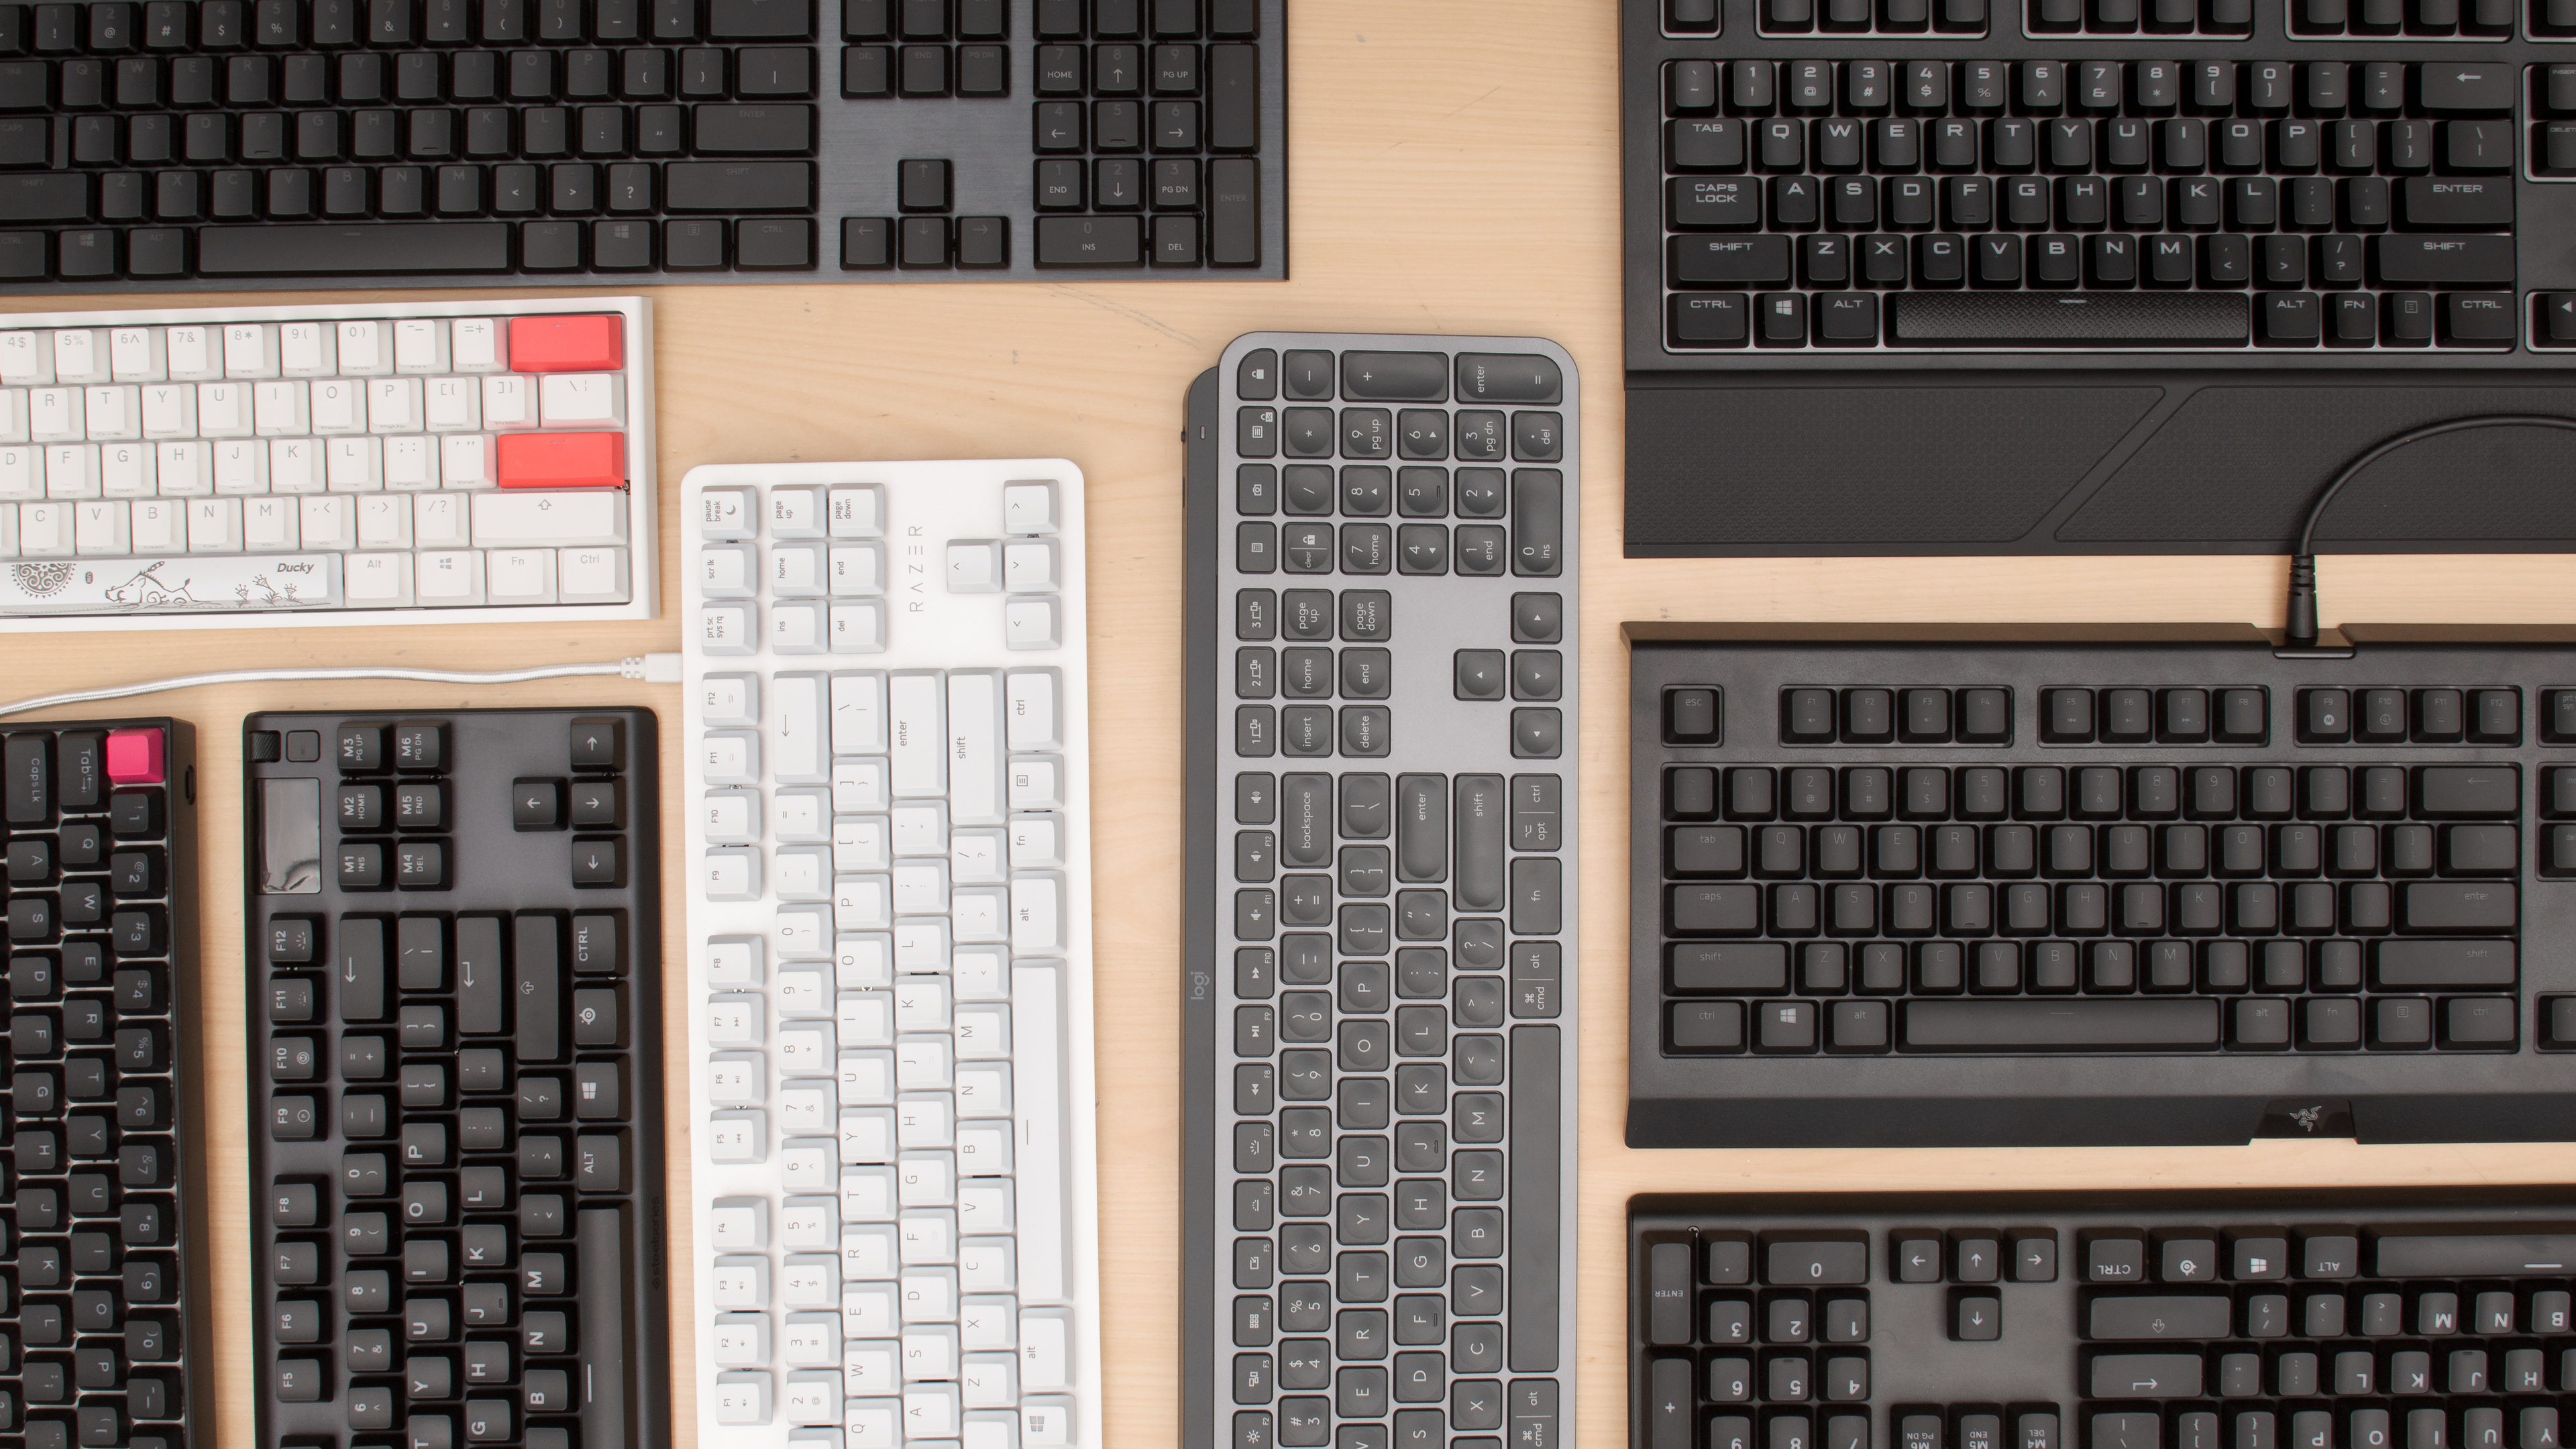 Best Keyboards